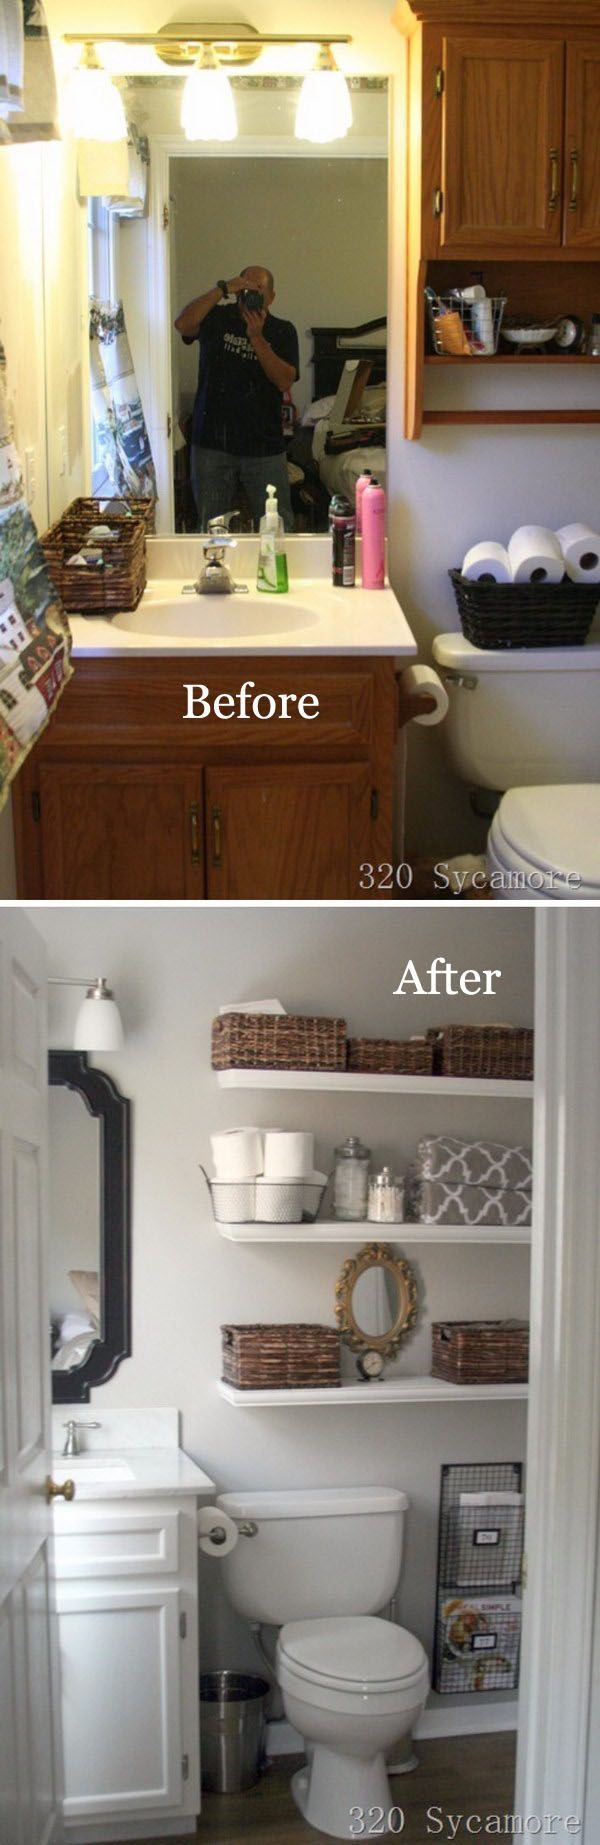 before and after 20 awesome bathroom makeovers downstairs bathroomwhite bathroommaster bathroomsbathroom smallbrown bathroom decordecorating - Tiny Bathroom Decorating Ideas Pictures